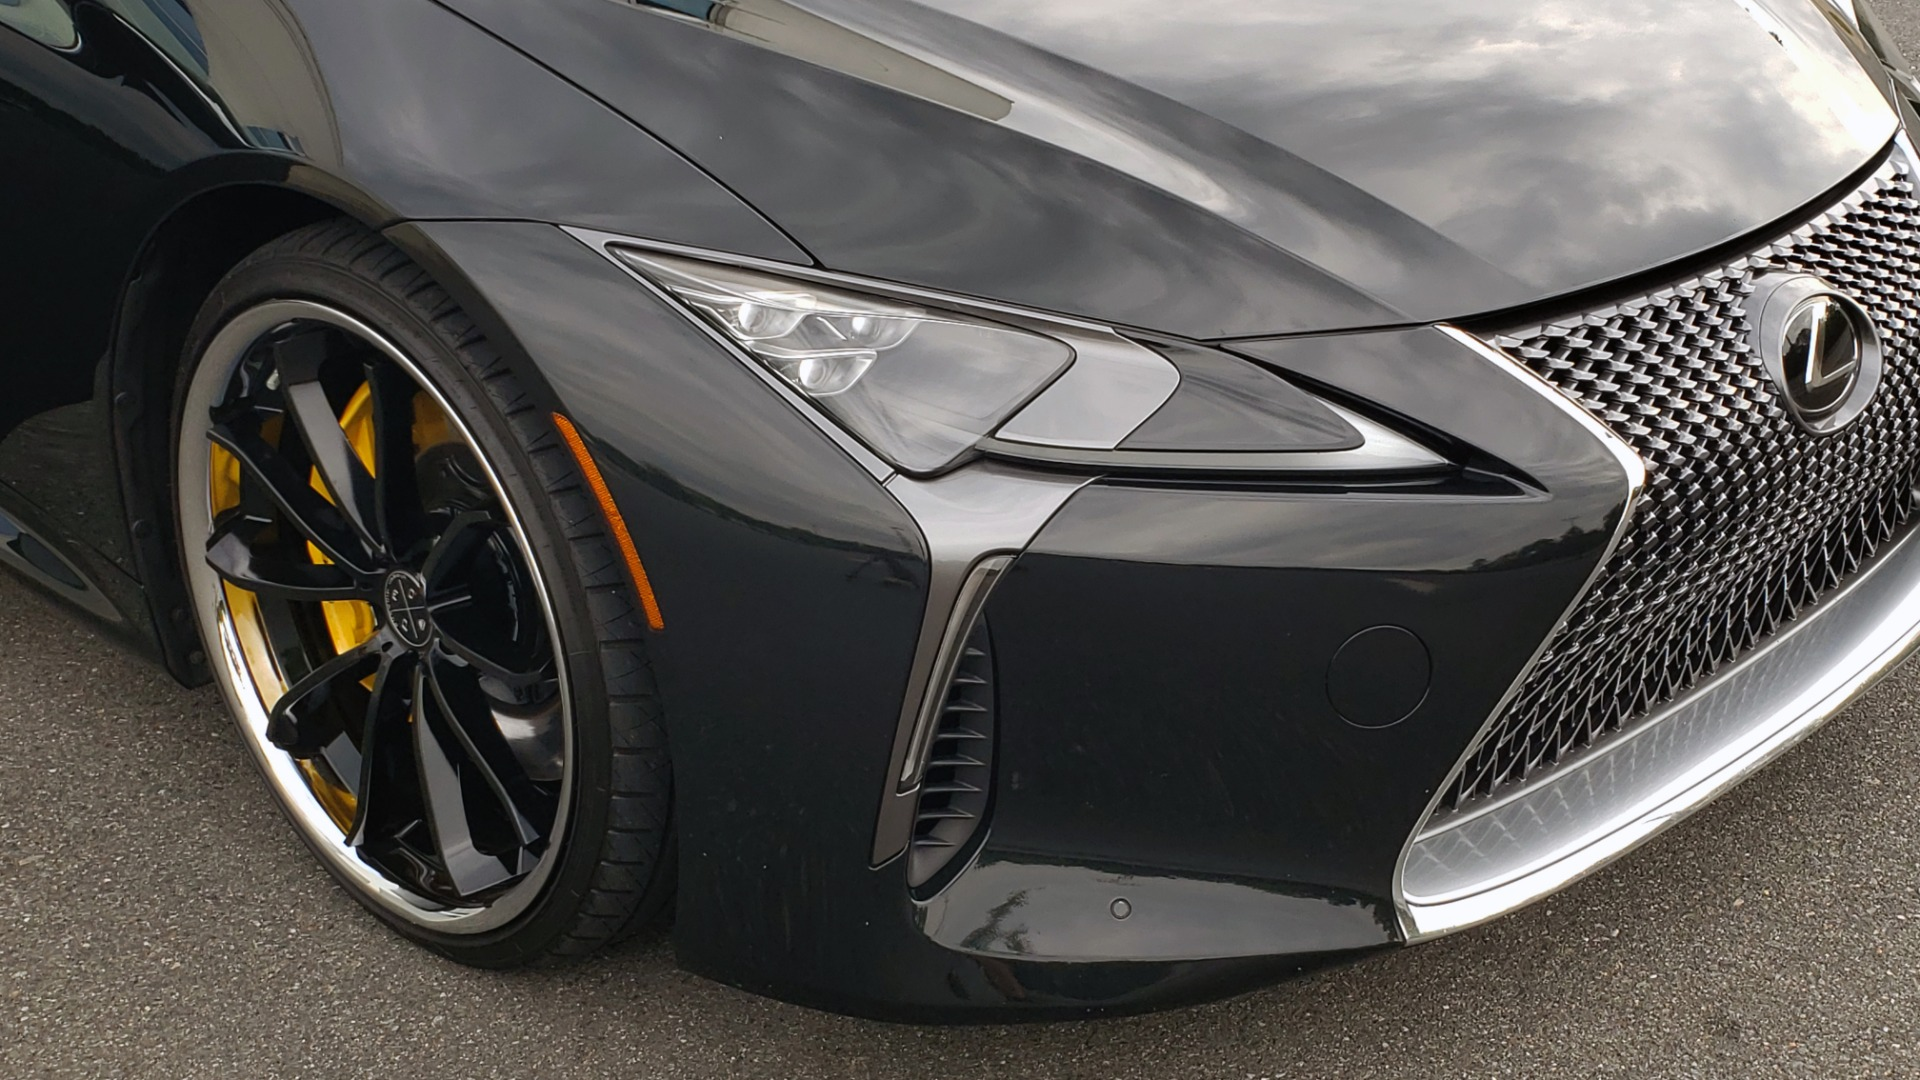 Used 2018 Lexus LC 500 COUPE / 5.0L V8 (471HP) / 10-SPD AUTO / HUD / SUNROOF / REARVIEW for sale Sold at Formula Imports in Charlotte NC 28227 28